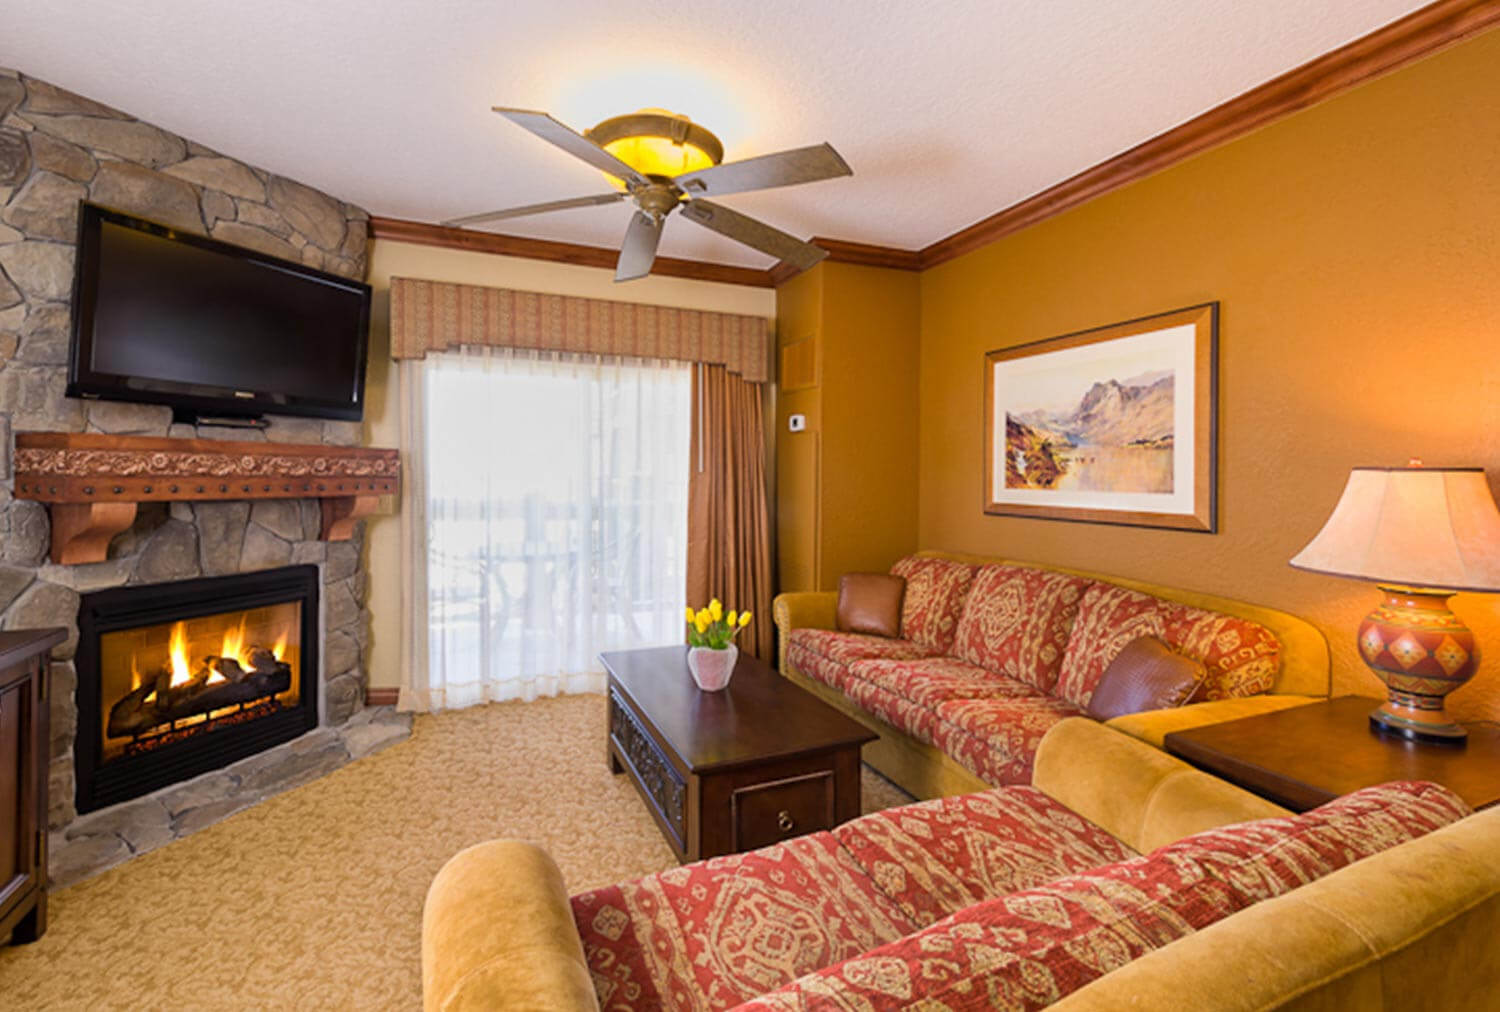 Luxury One-Bedroom Villa Living Area at our Park City Resort in Utah | Westgate Park City Resort & Spa | Westgate Resorts